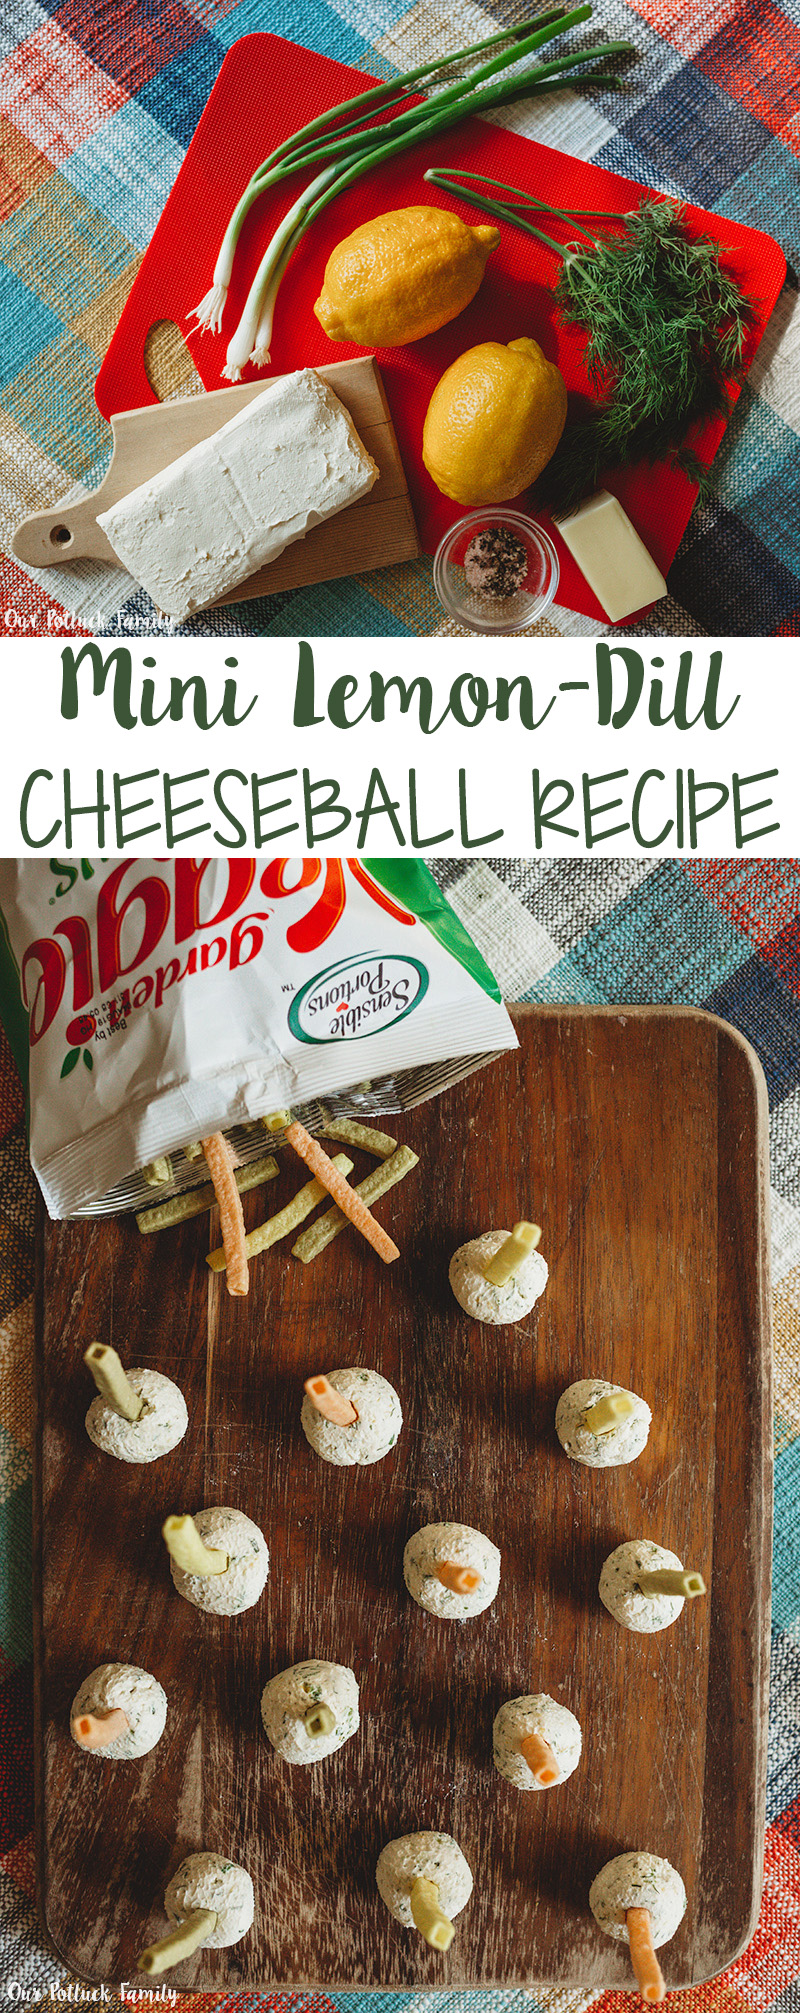 Mini Lemon Dill Cheeseball Recipe